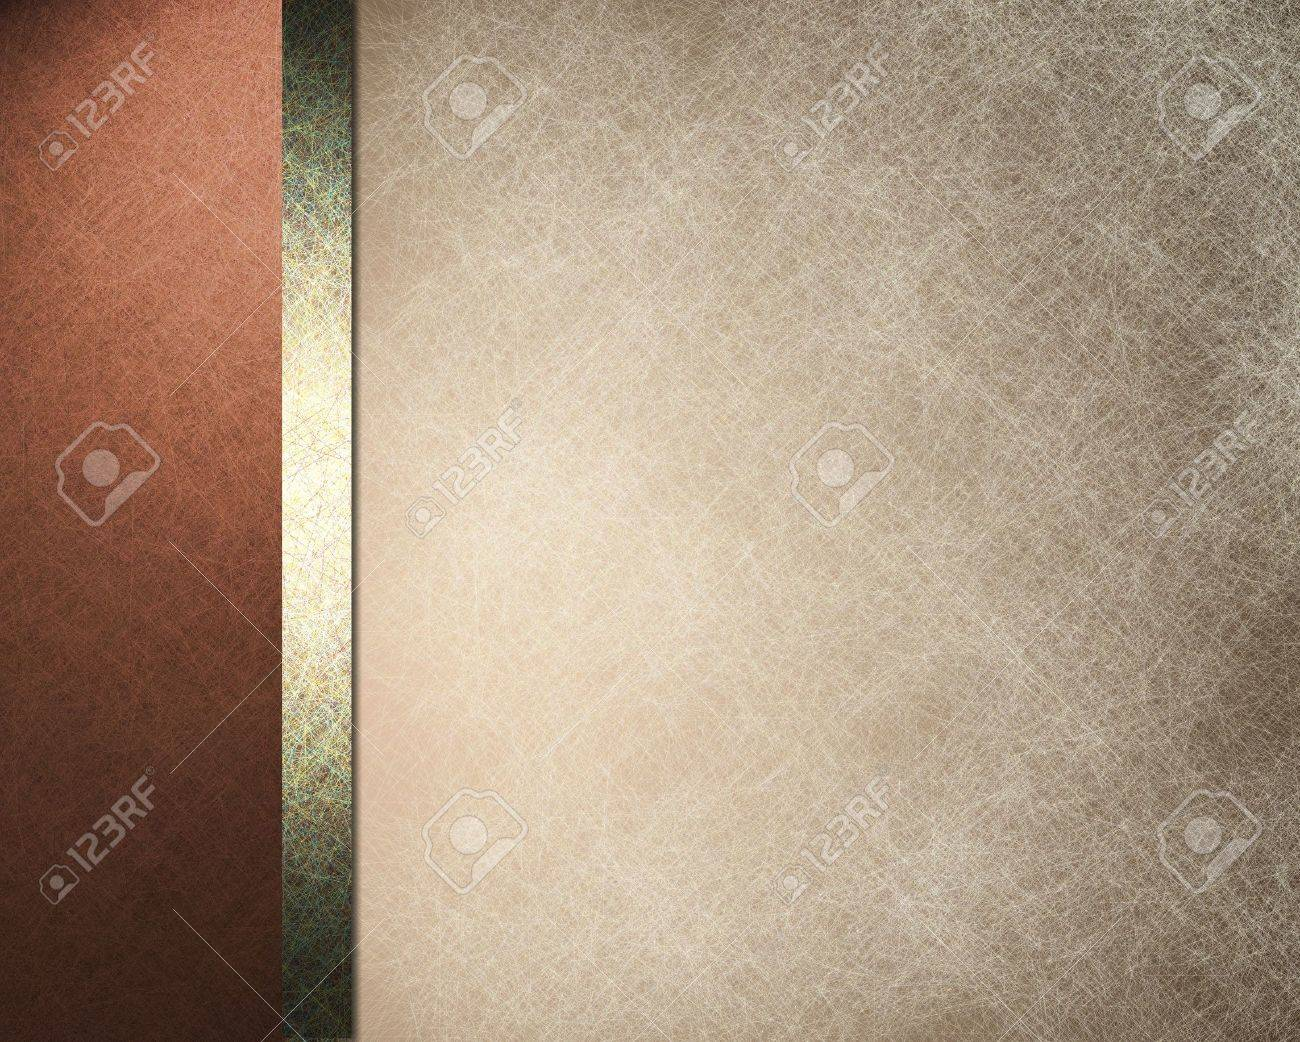 elegant formal background with light brown beige parchment paper illustration with striped side border of pink red color and gold ribbon with vintage grunge texture and copy space for brochure or menu Stock Photo - 12252768